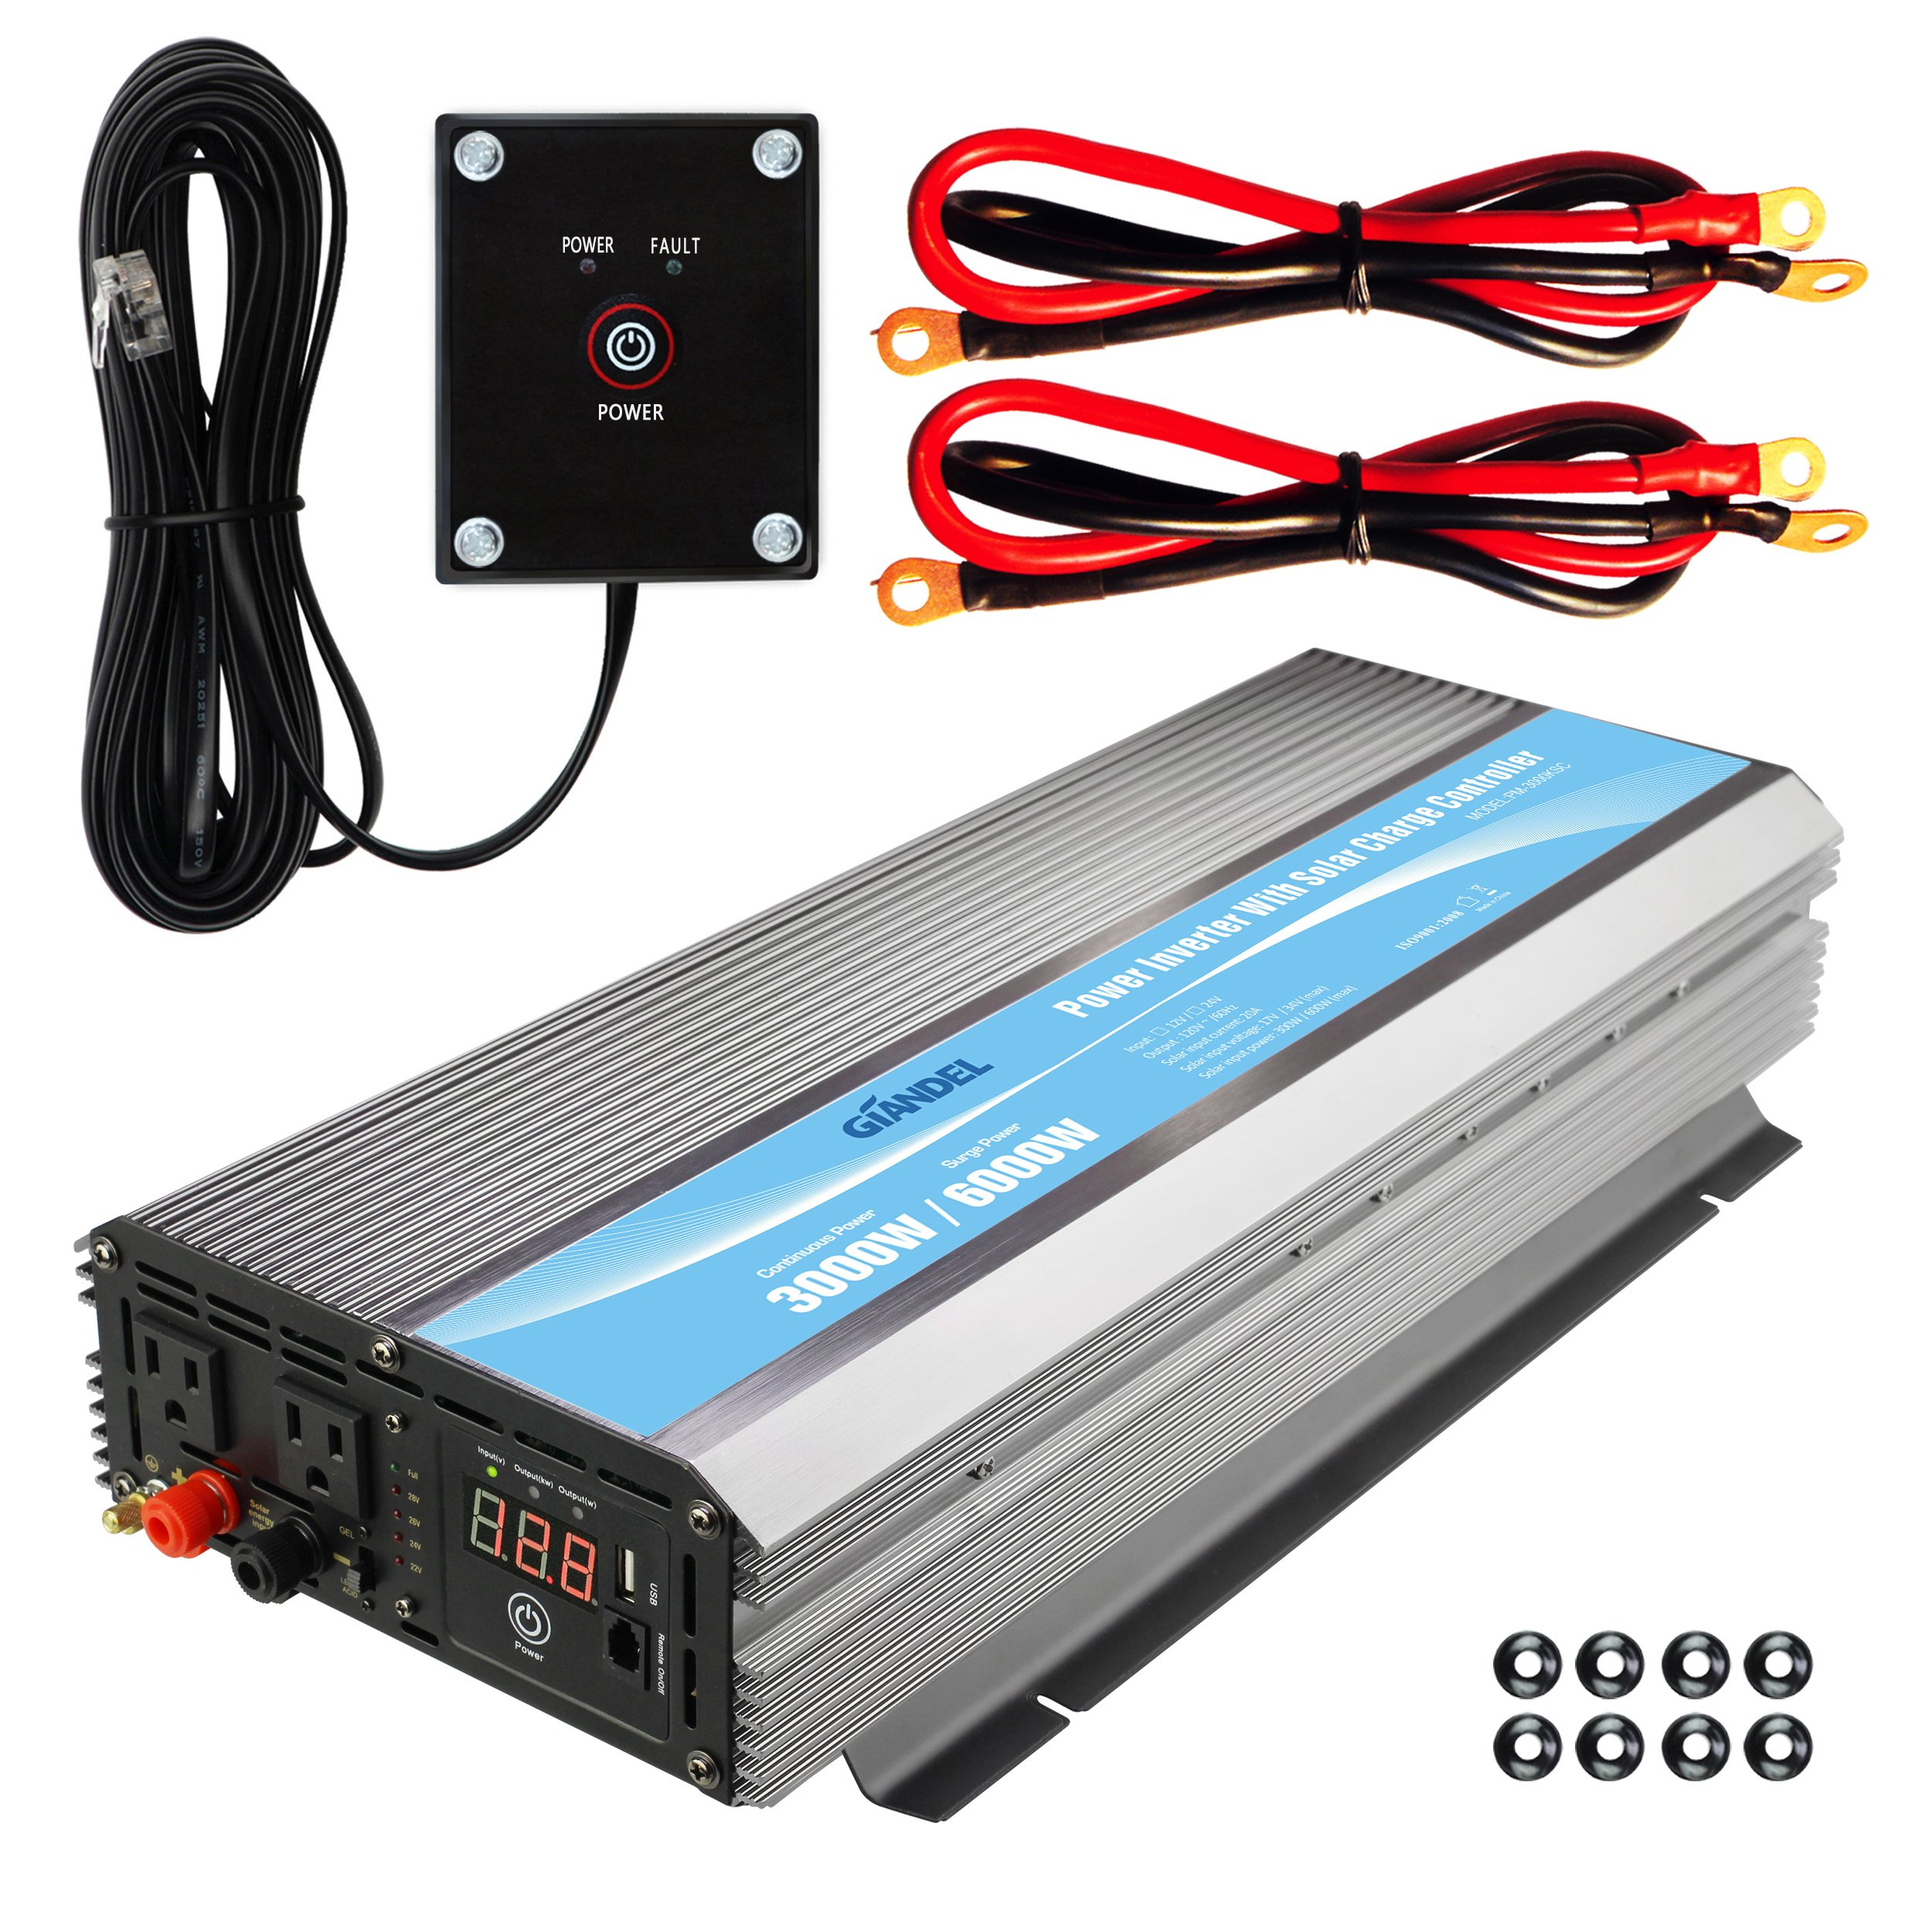 Modified Sine Wave Power Inverter 3000 Watt DC12 Volt To AC 120 Volt With Remote Control And LED Display